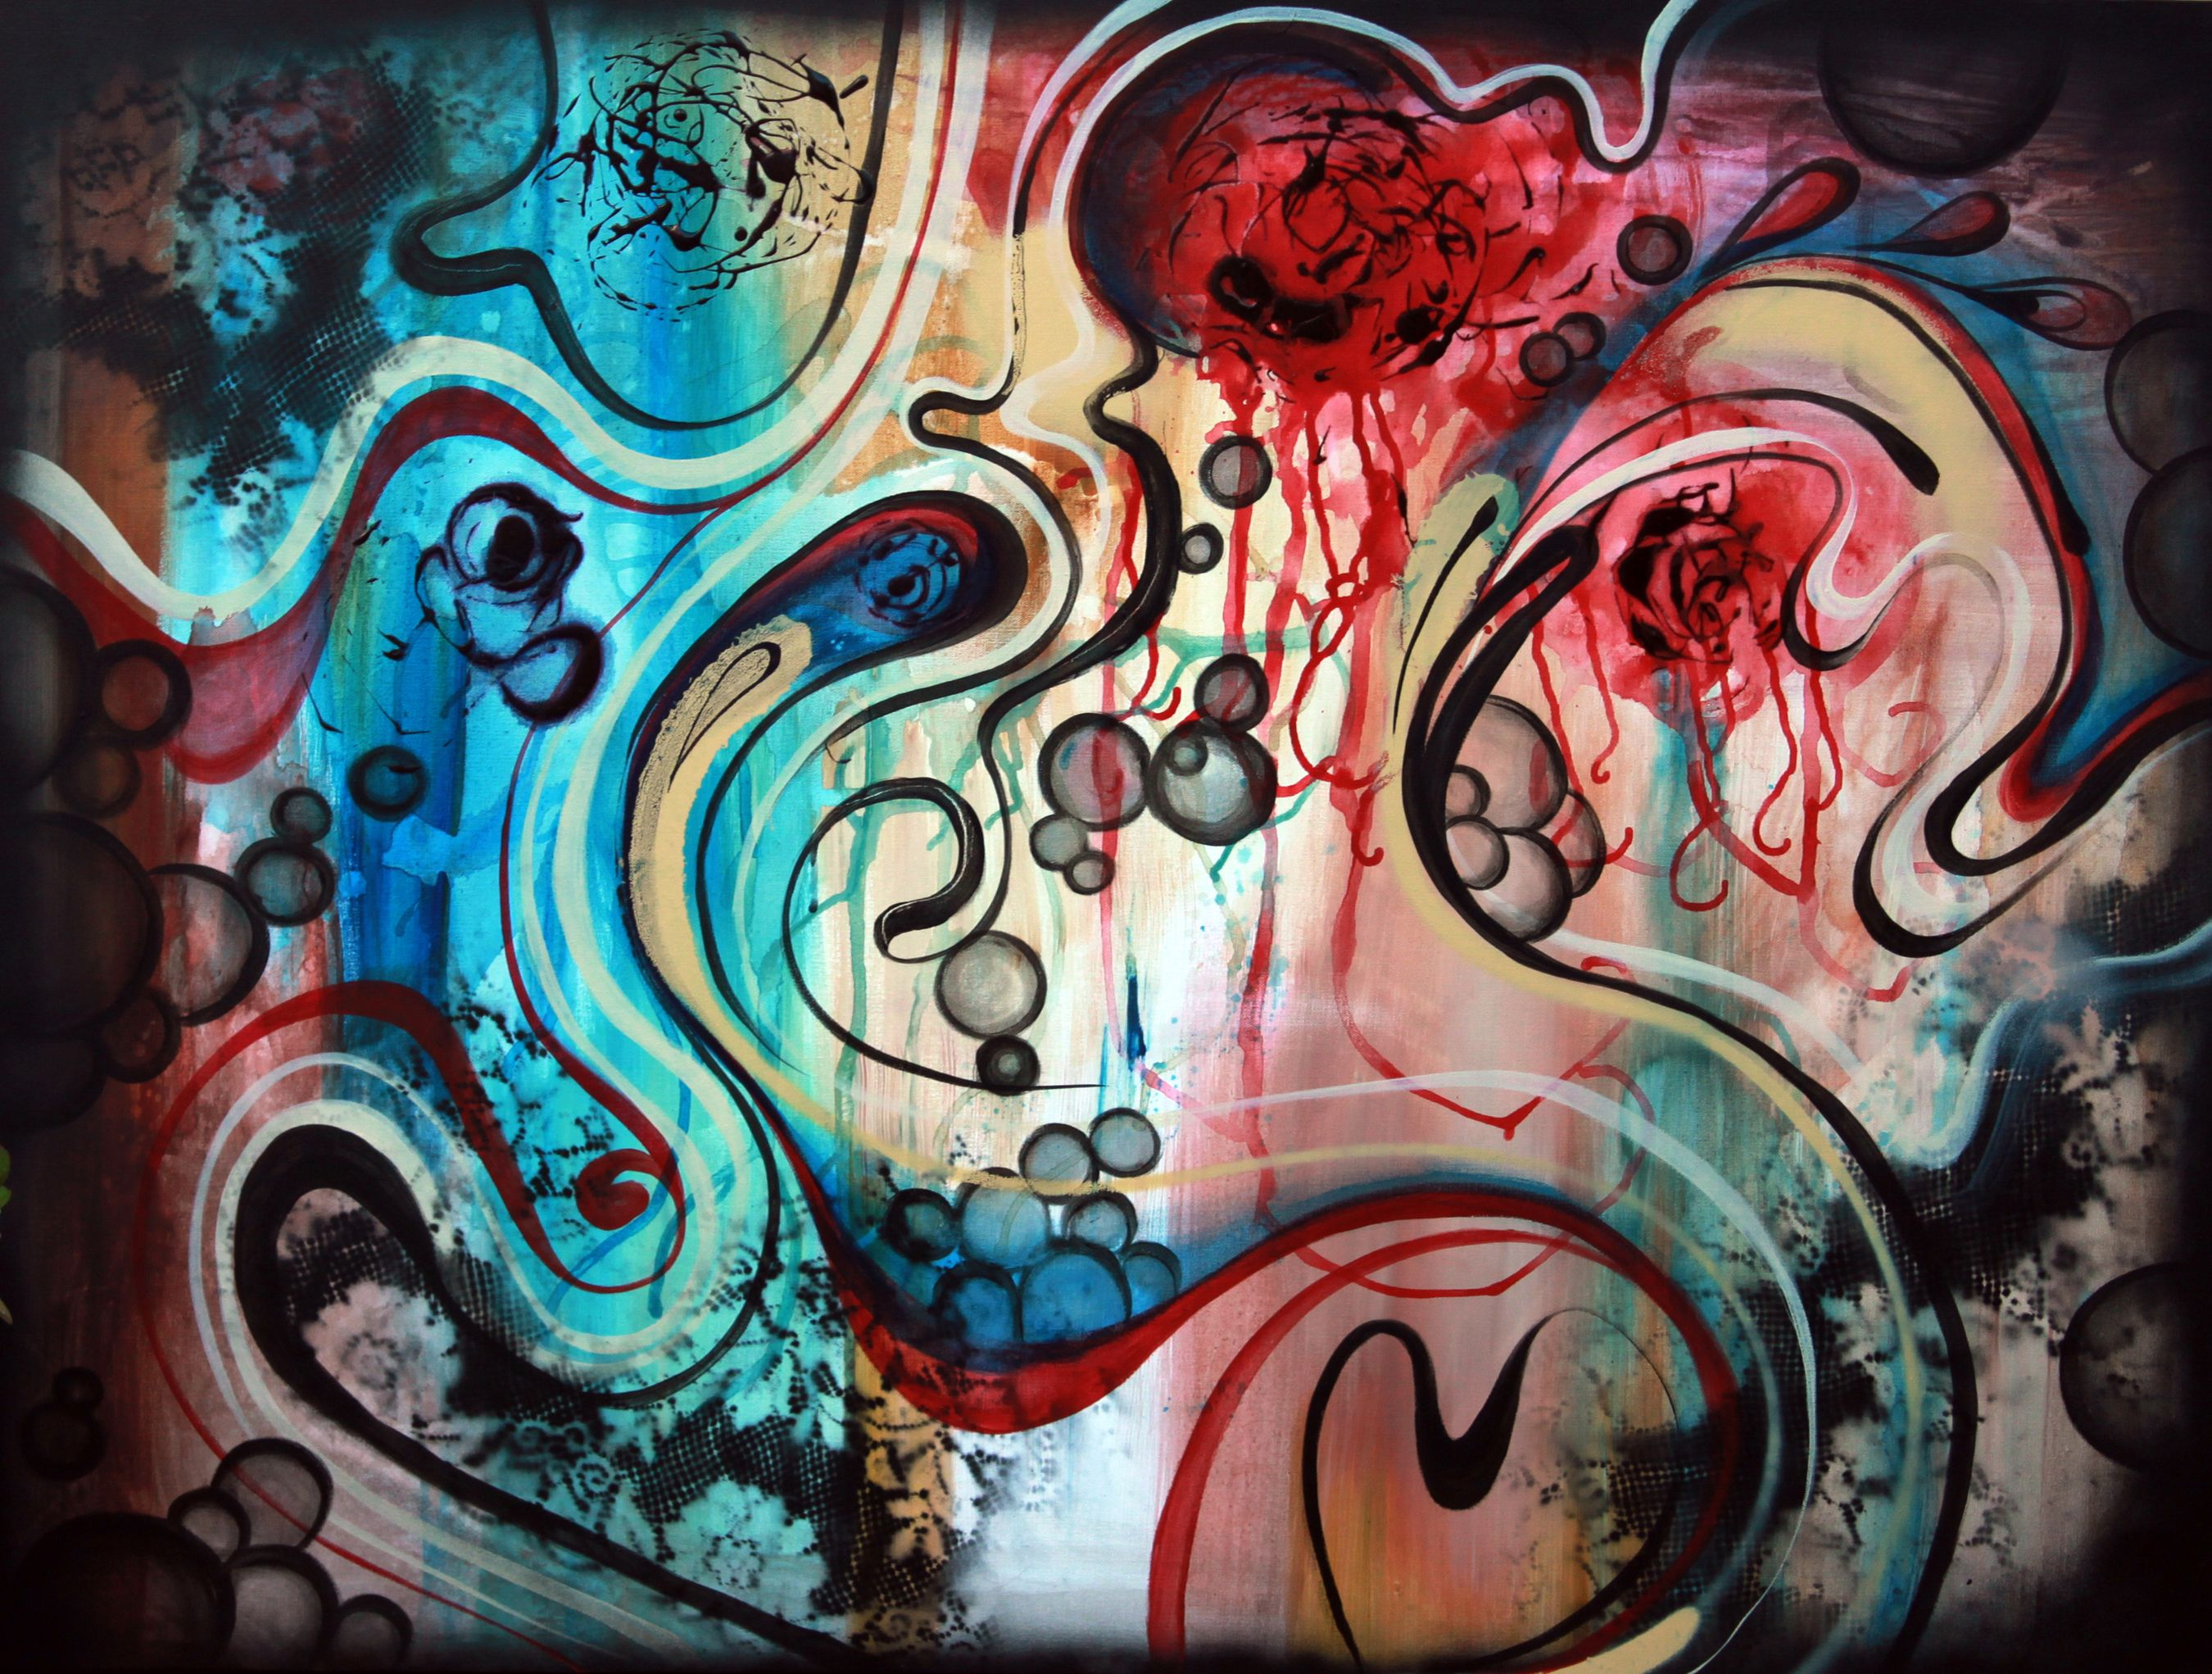 Abstract Art Hd Background Wallpaper 298 Hd Wallpapers Spray Paint On Canvas Abstract Art Art